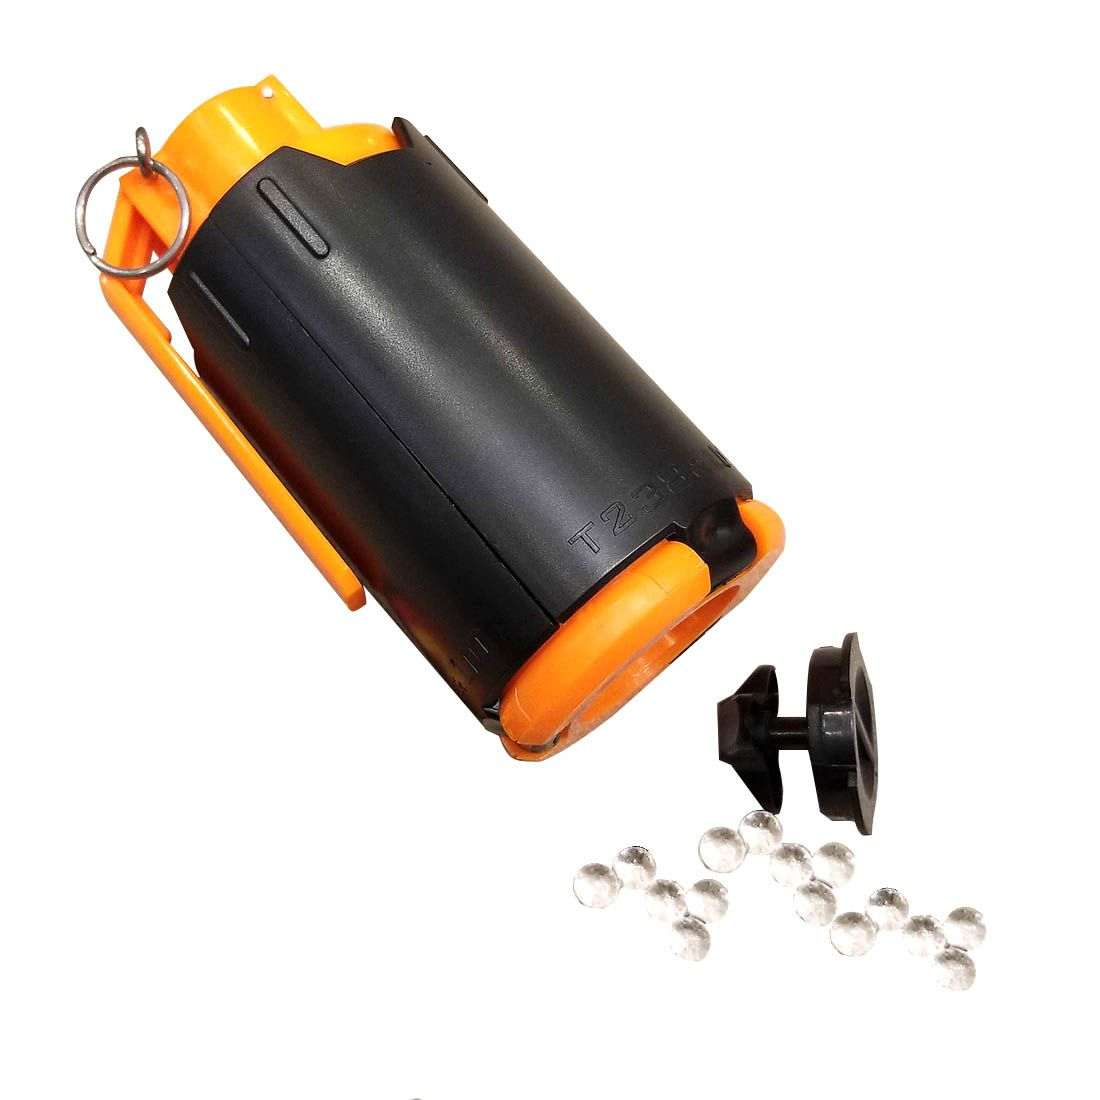 Tactical Plastic Modified Crystal Water Beads Bomb Crystal Water Bullet Bomb - Black + Orange